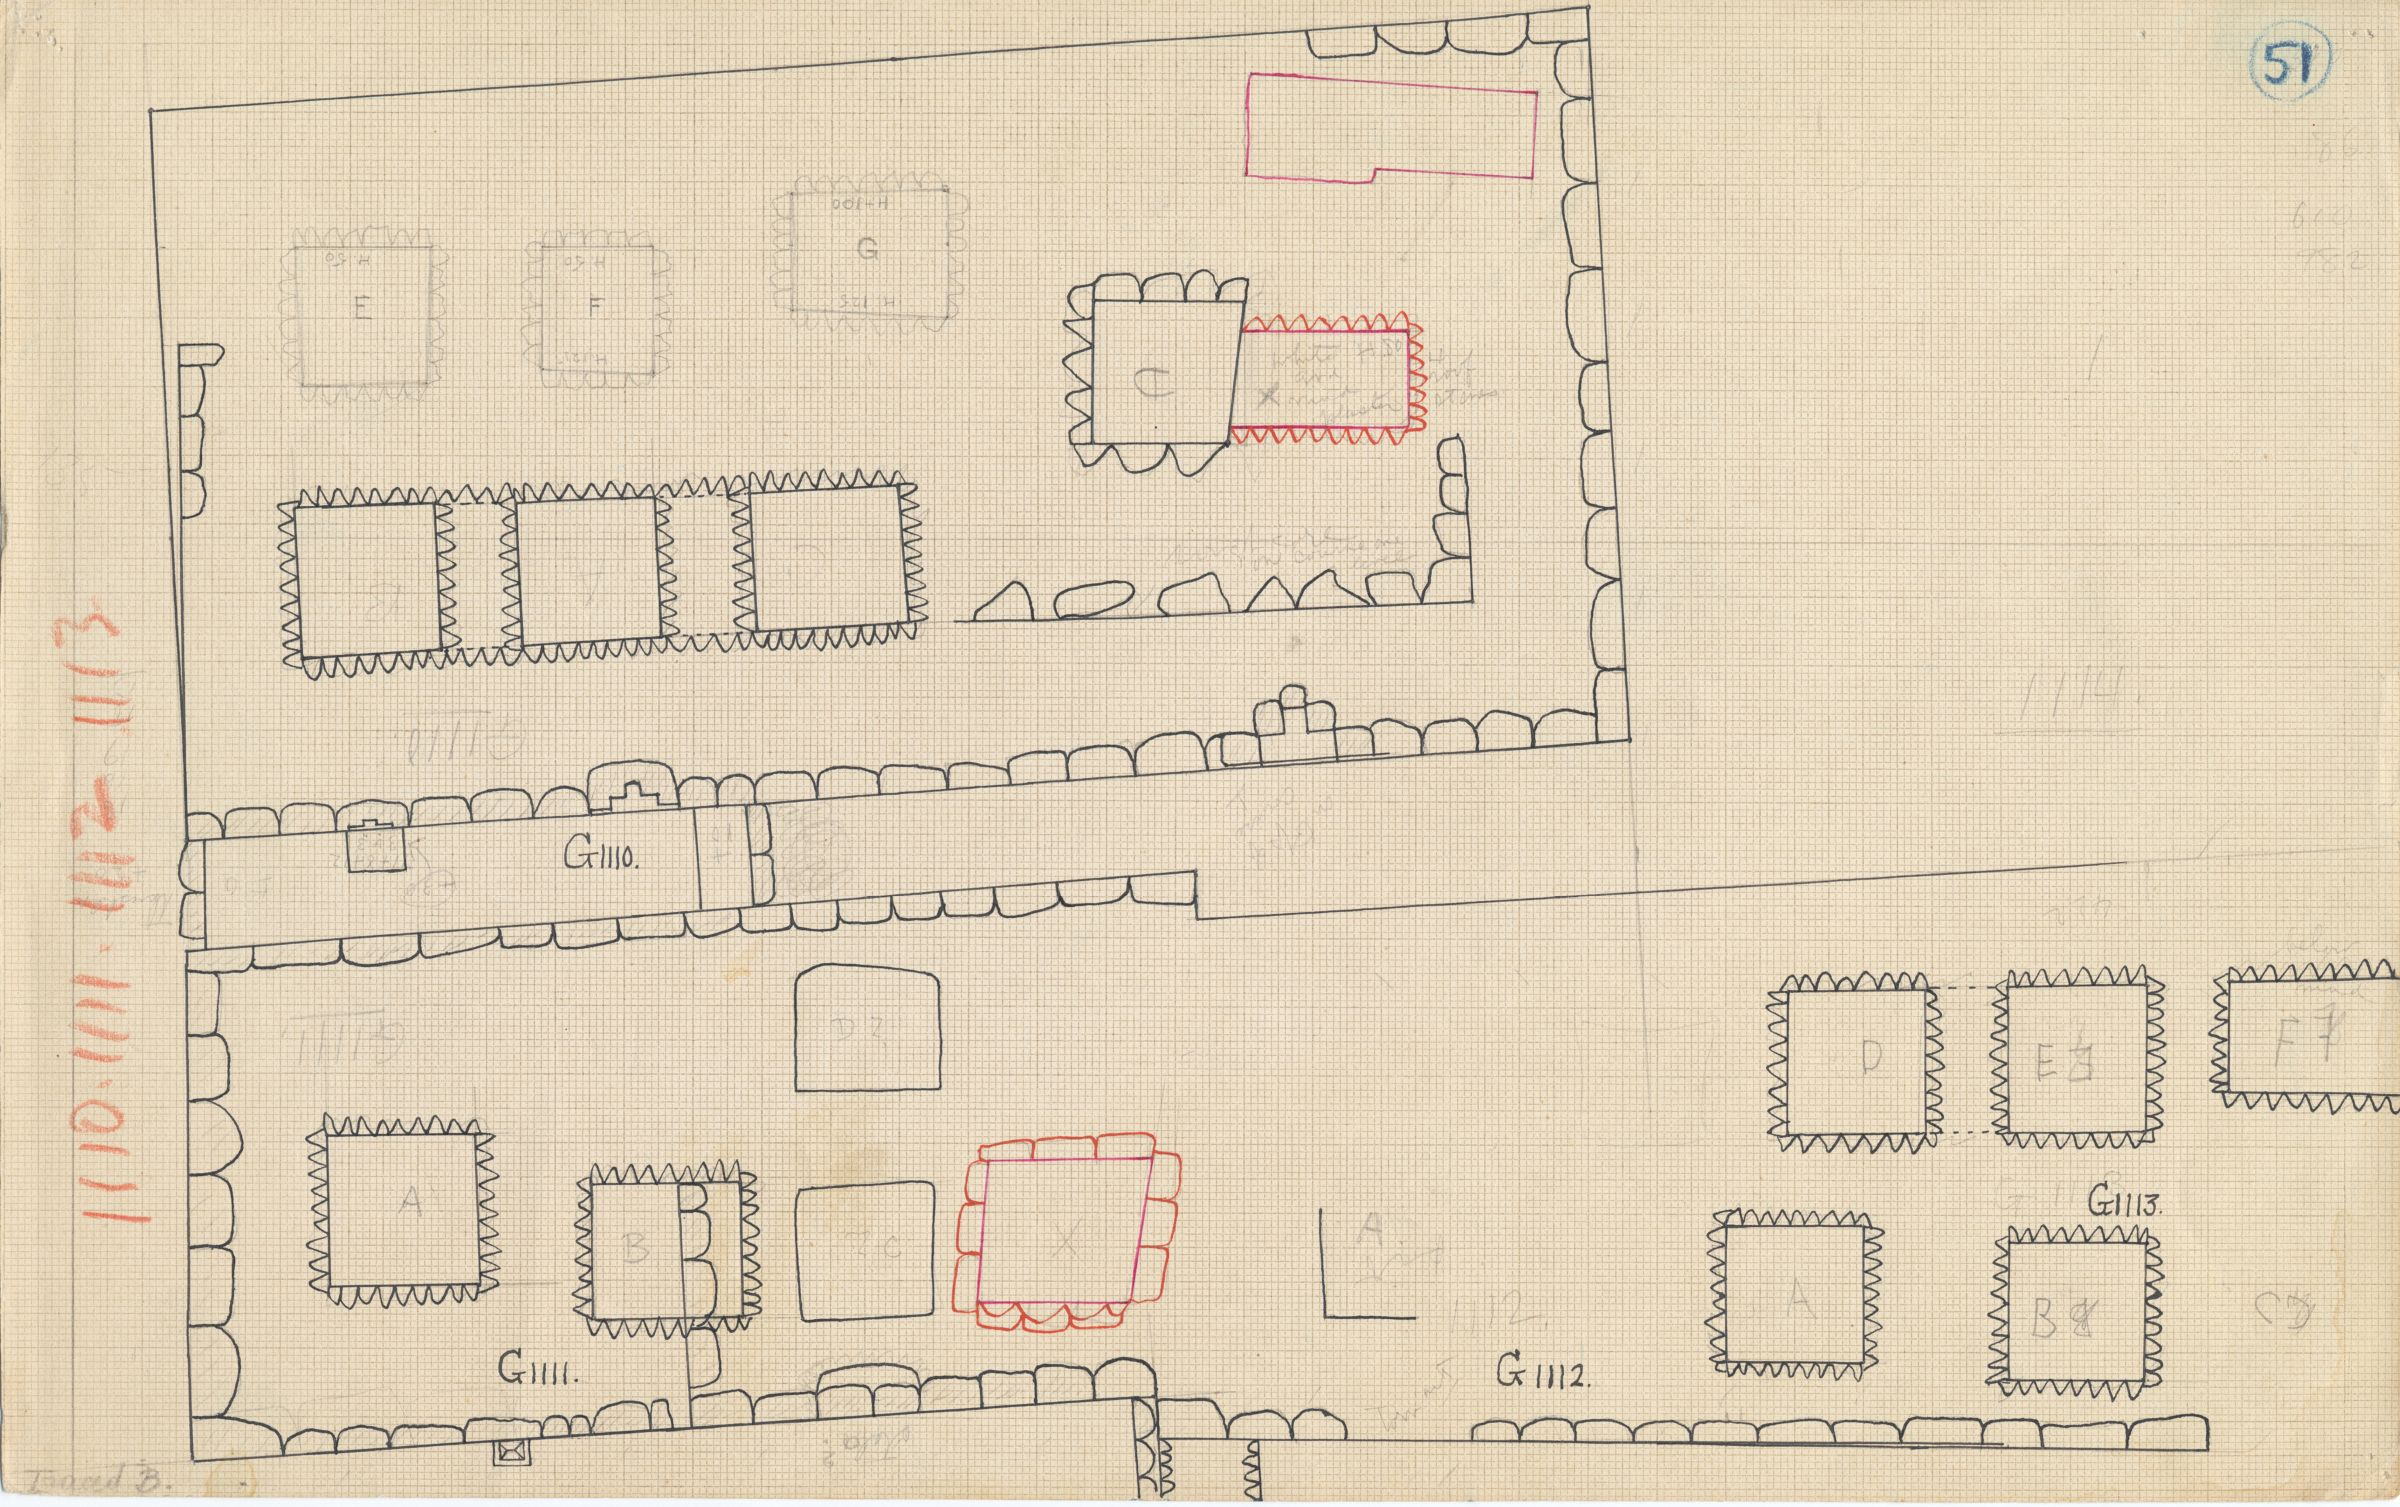 Maps and plans: Plan of G 1110, G 1111, G 1112+1113